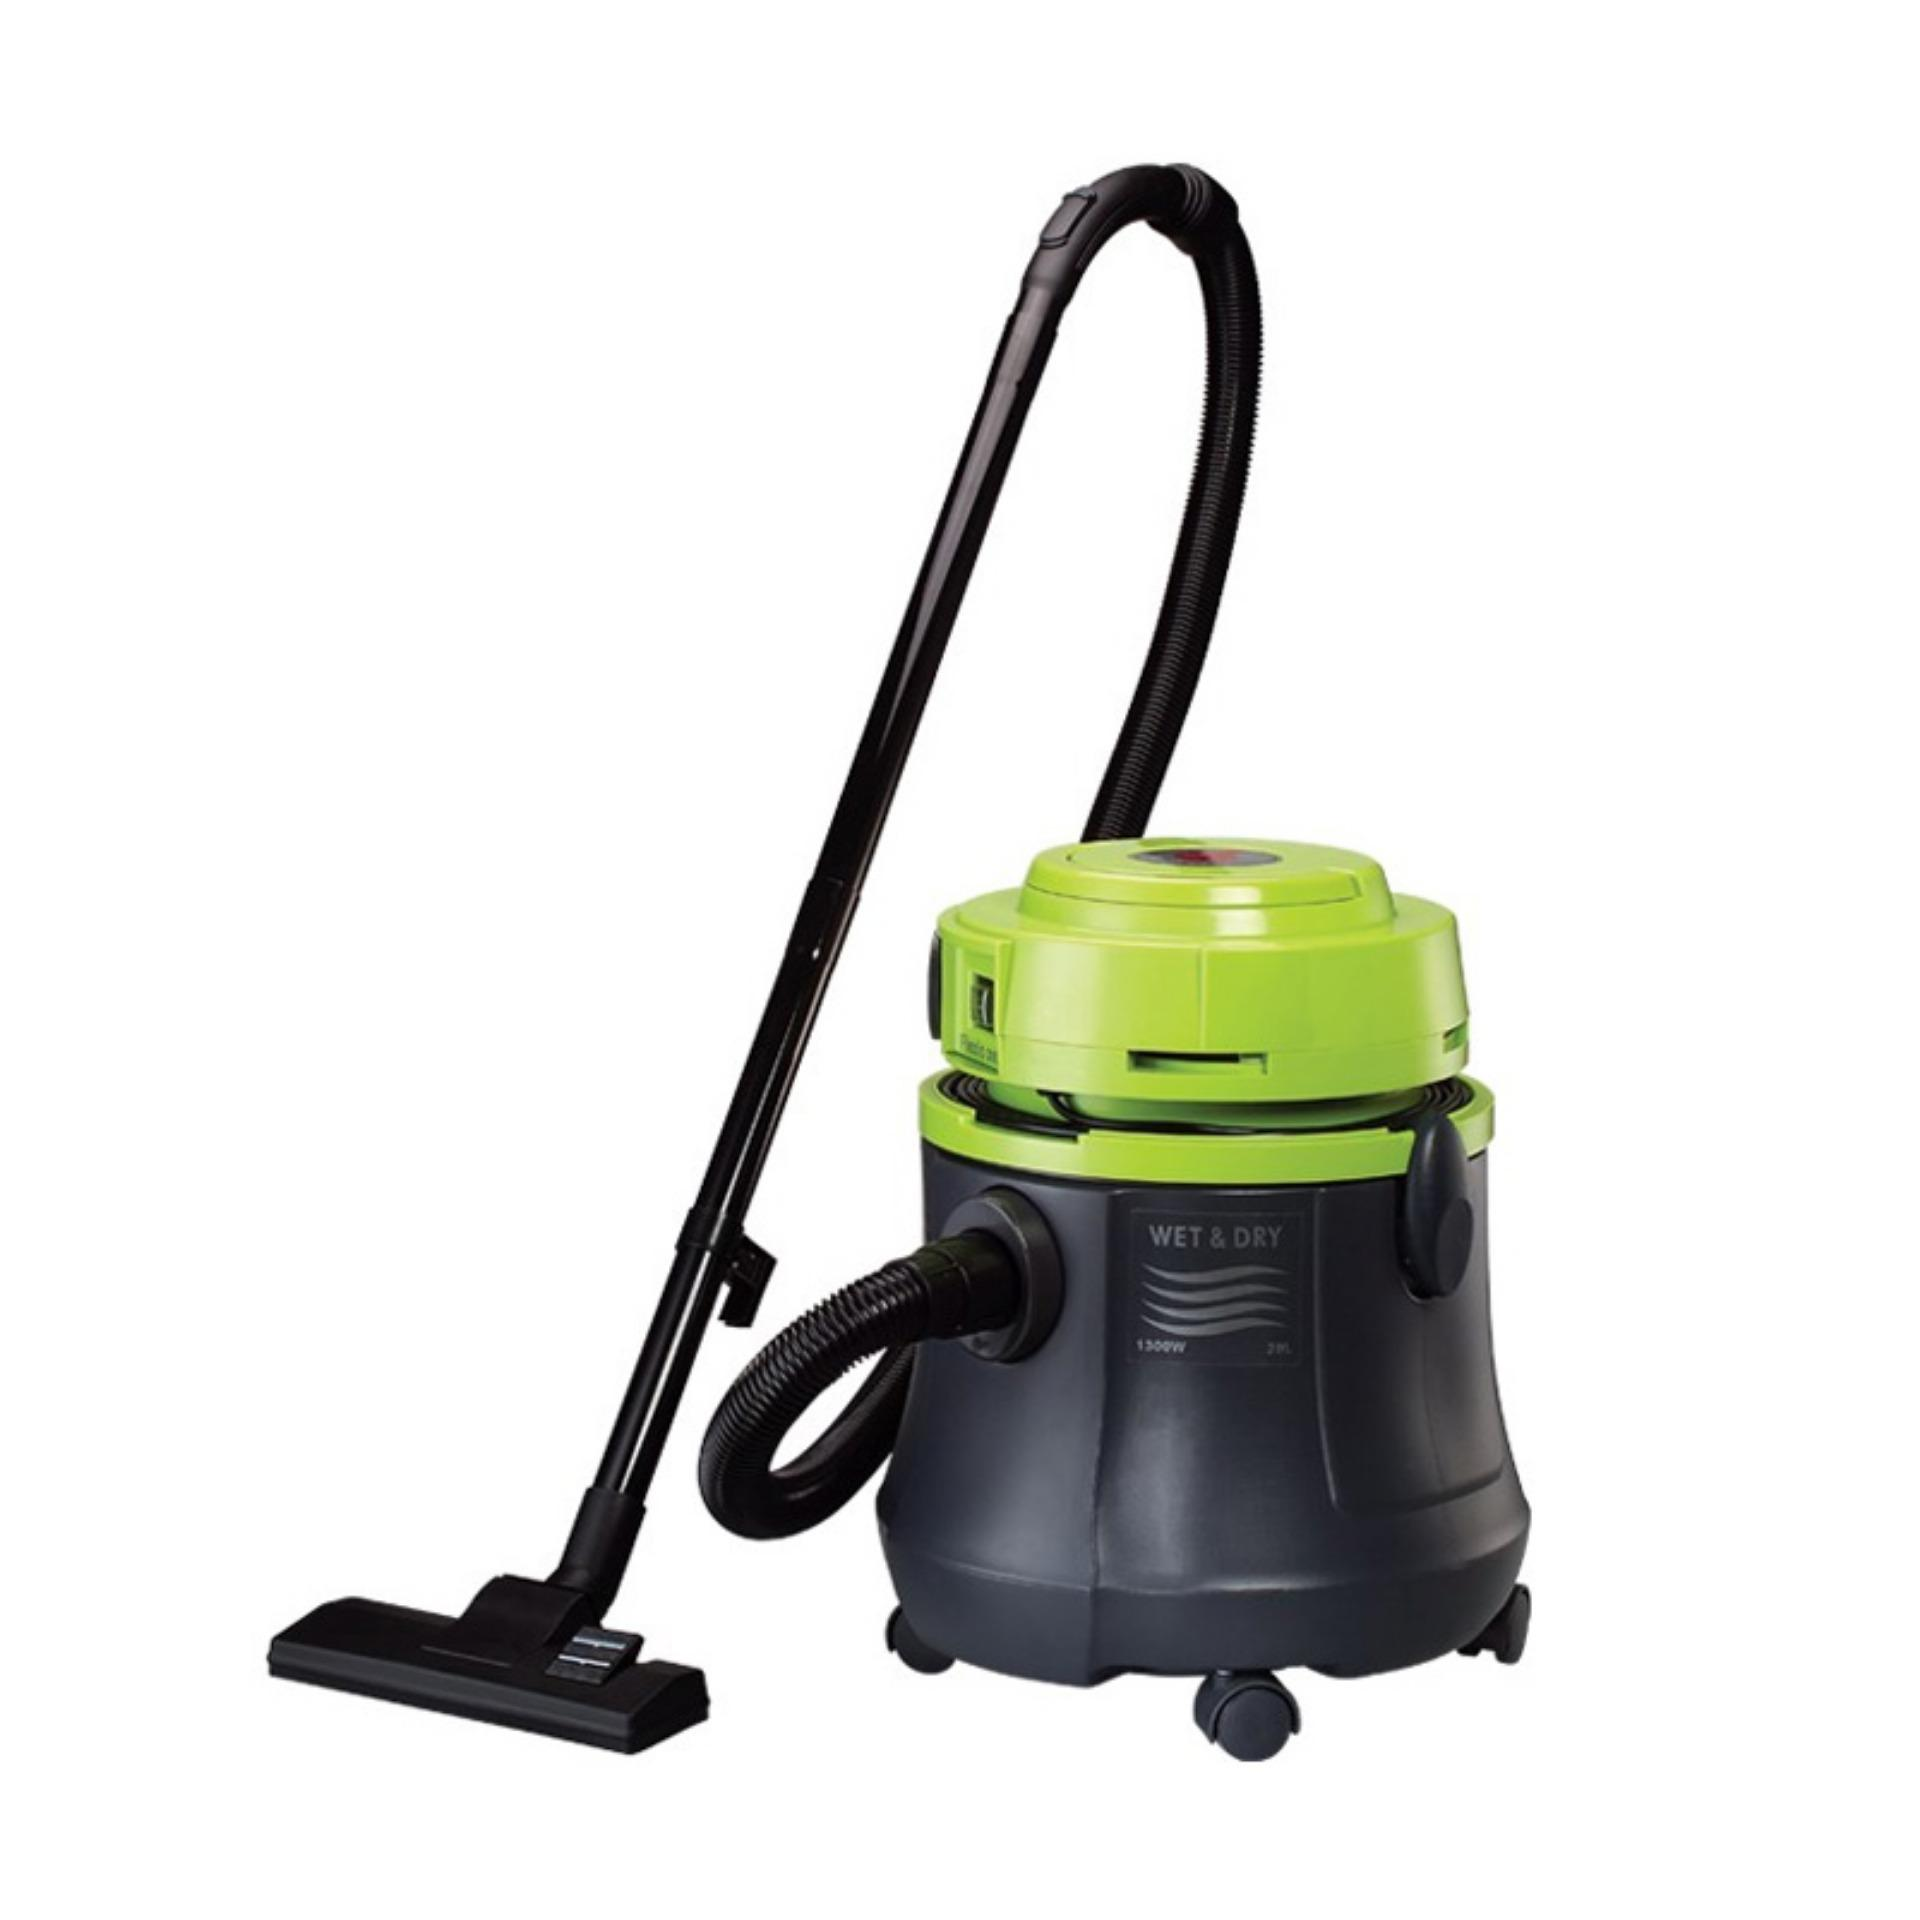 Electrolux Z823 Vacuum Cleaner Wet & Dry